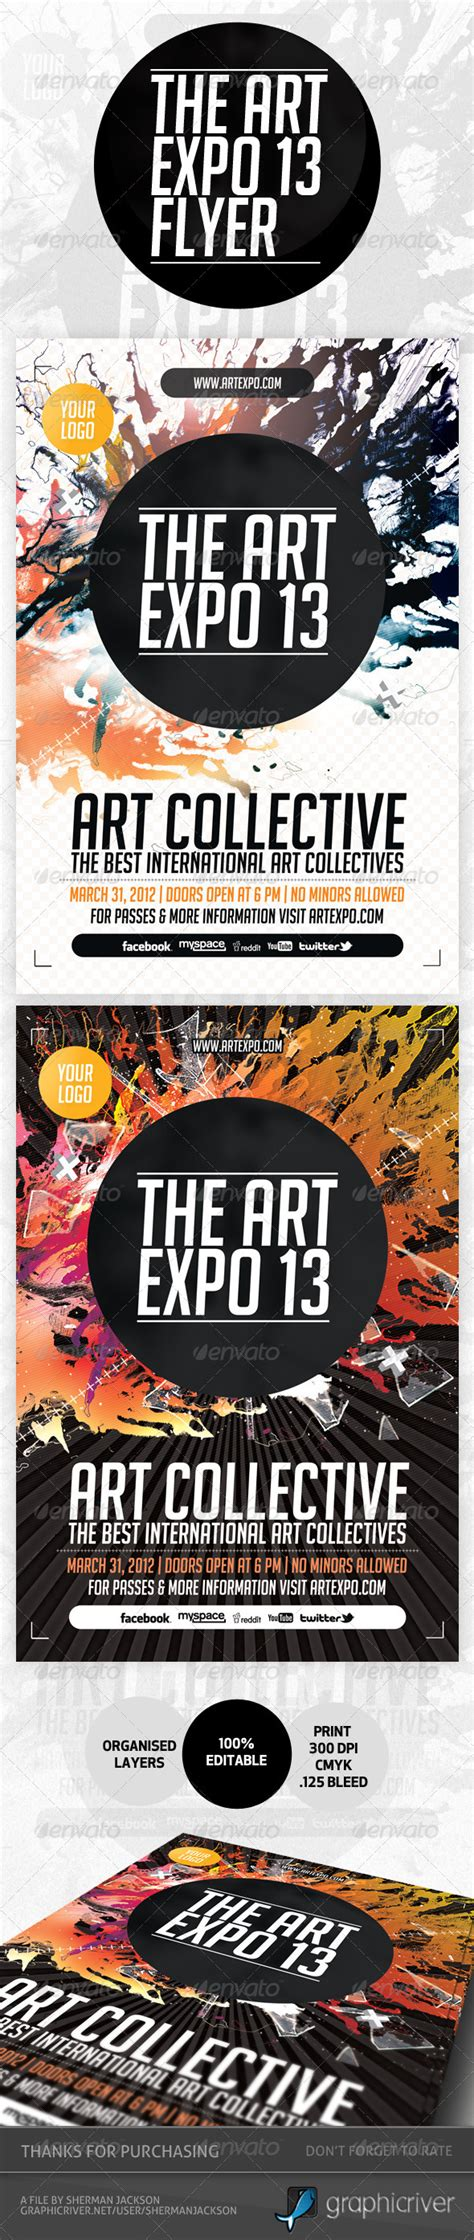 art expo art show event flyer template psd graphicriver